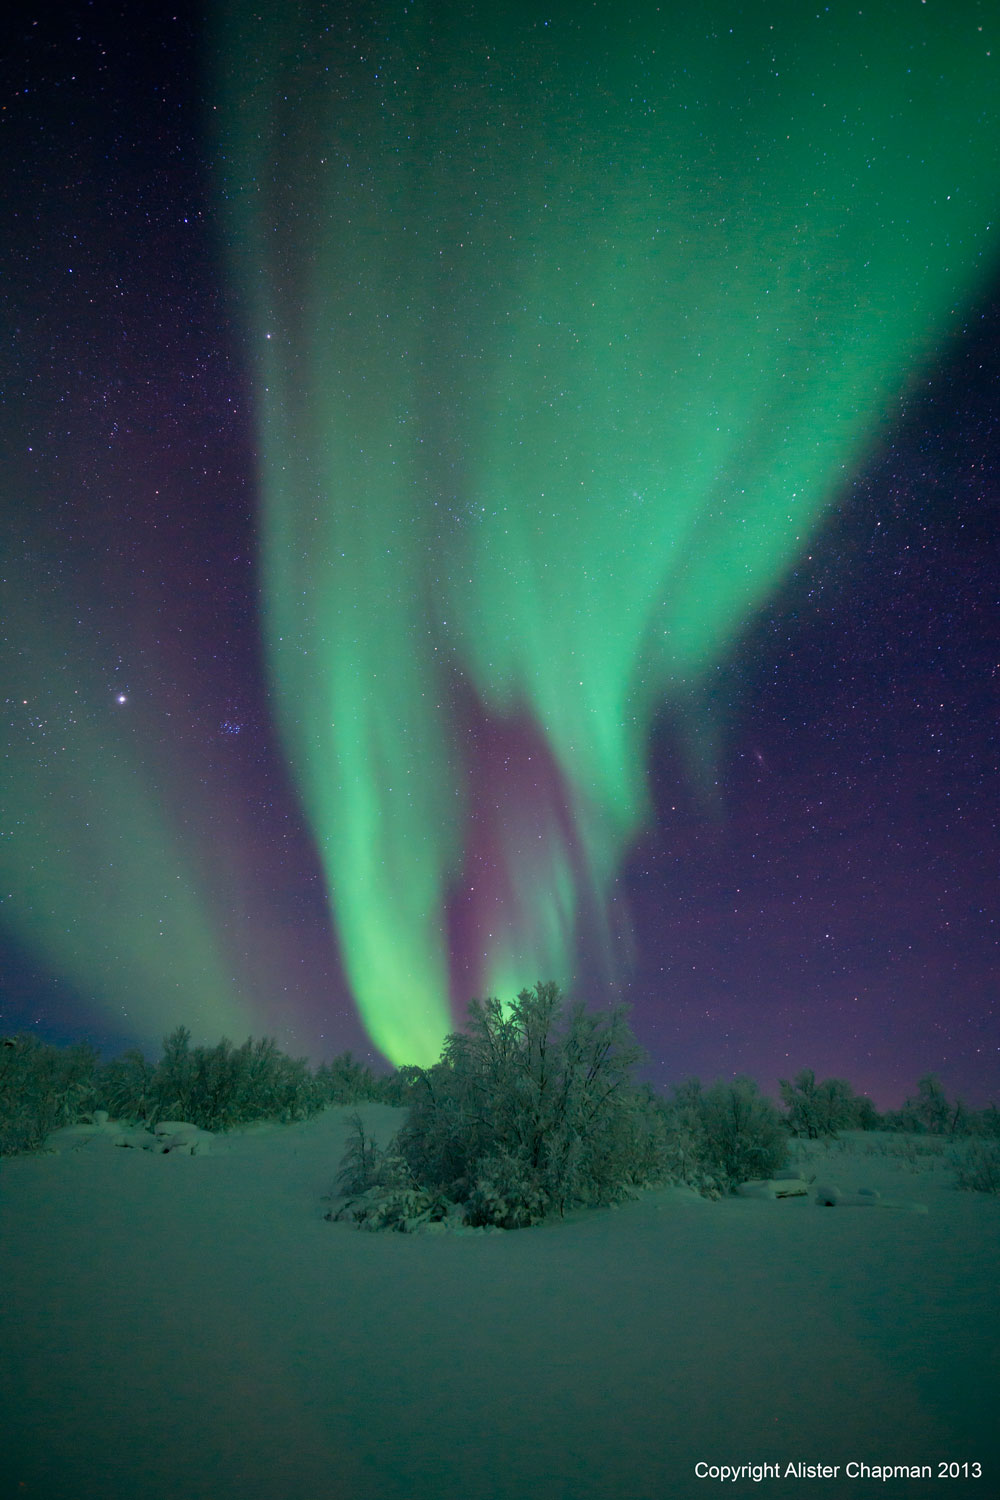 Like green flames or smoke the Aurora streaks into the sky.